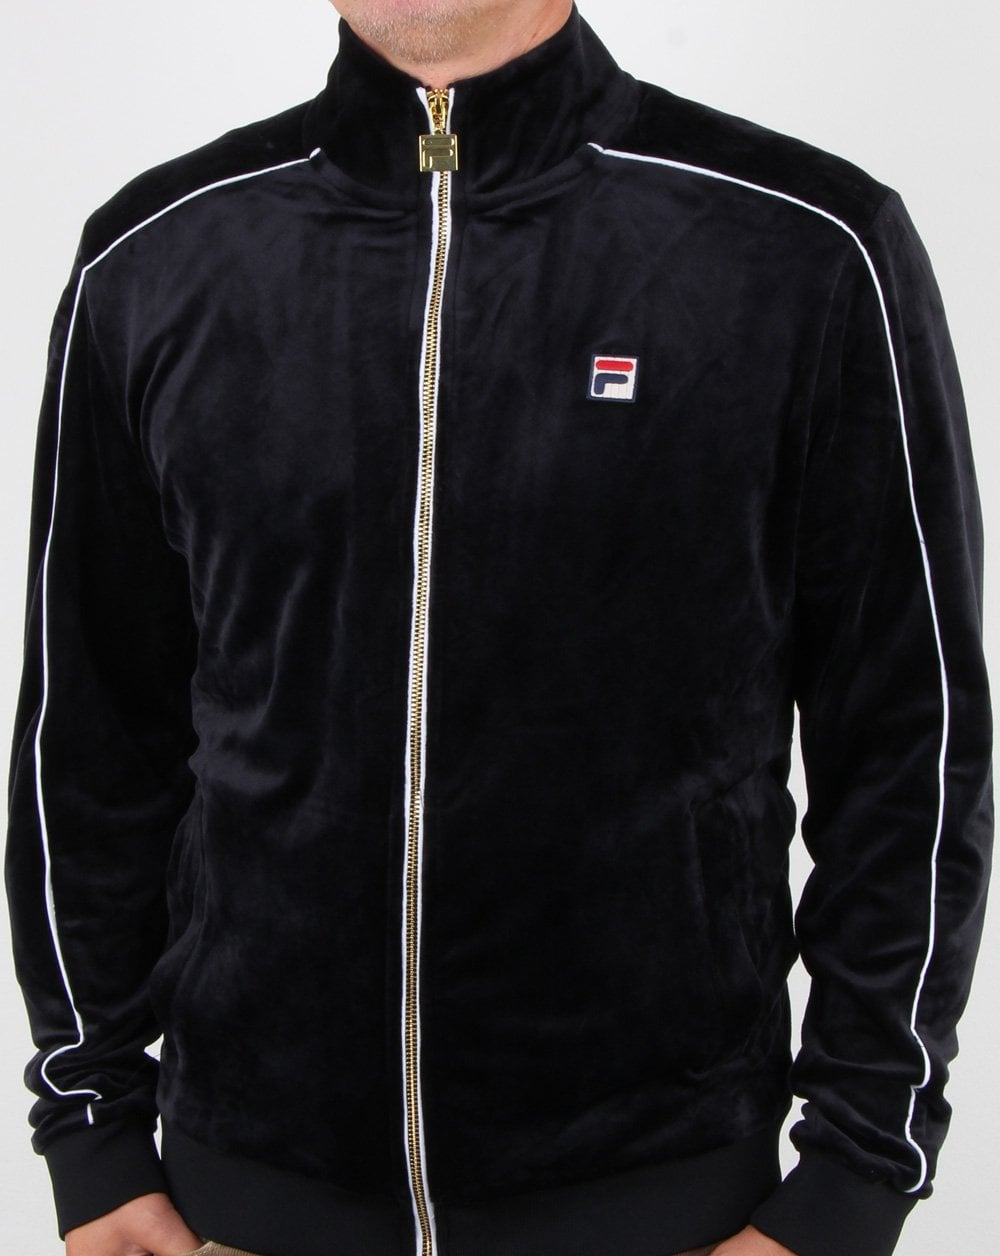 Fila Jacket Mens Black Sale Fila Shoes Fila Clothing Accessories